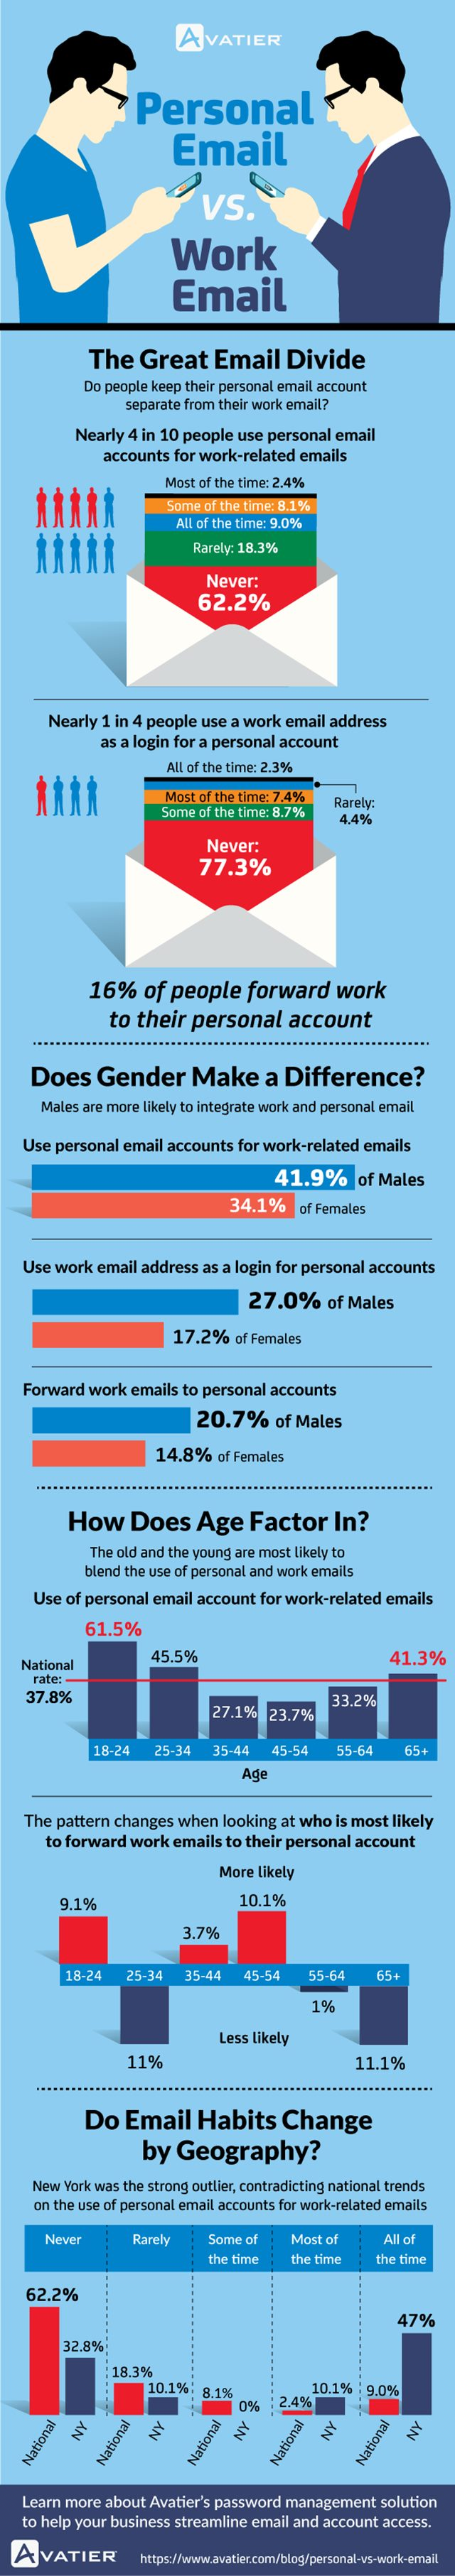 personal vs. work email